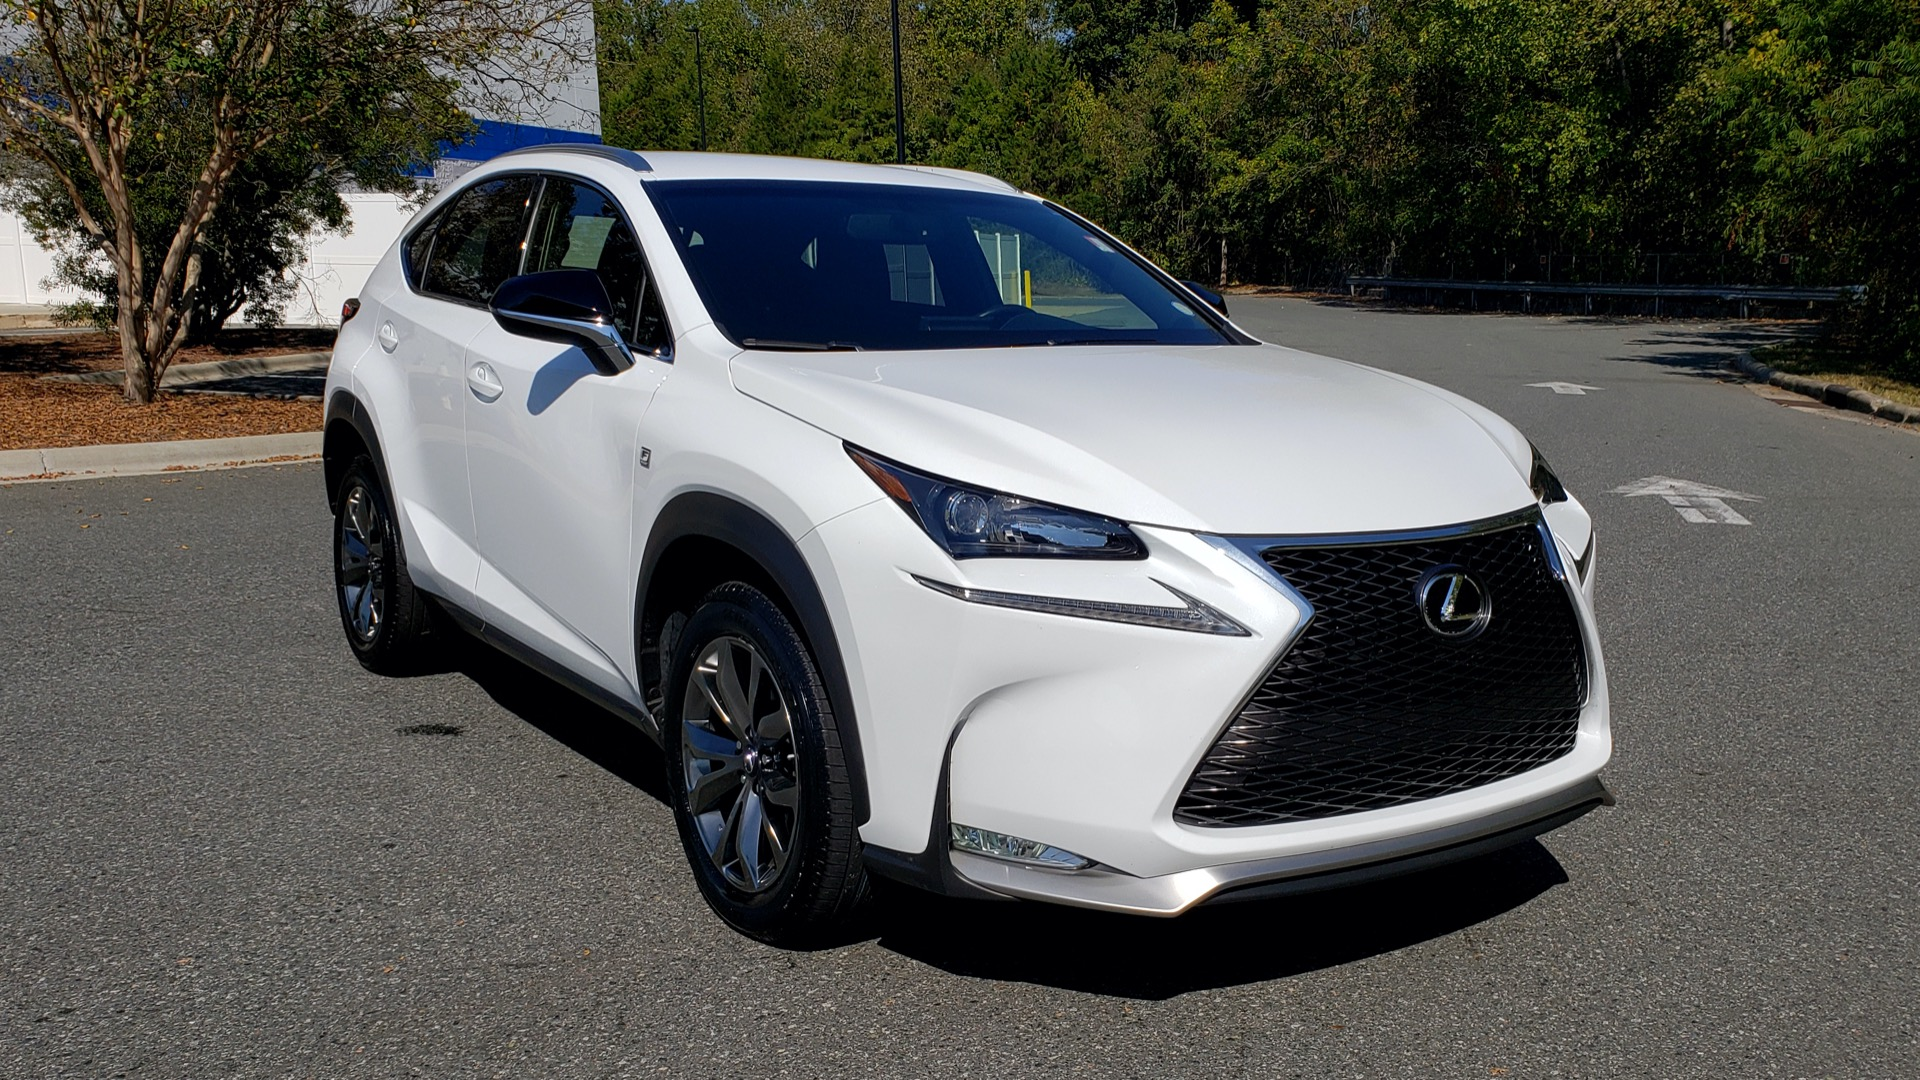 Used 2016 Lexus NX 200t F-SPORT / BACK-UP CAMERA / 18 INCH WHEELS for sale Sold at Formula Imports in Charlotte NC 28227 10